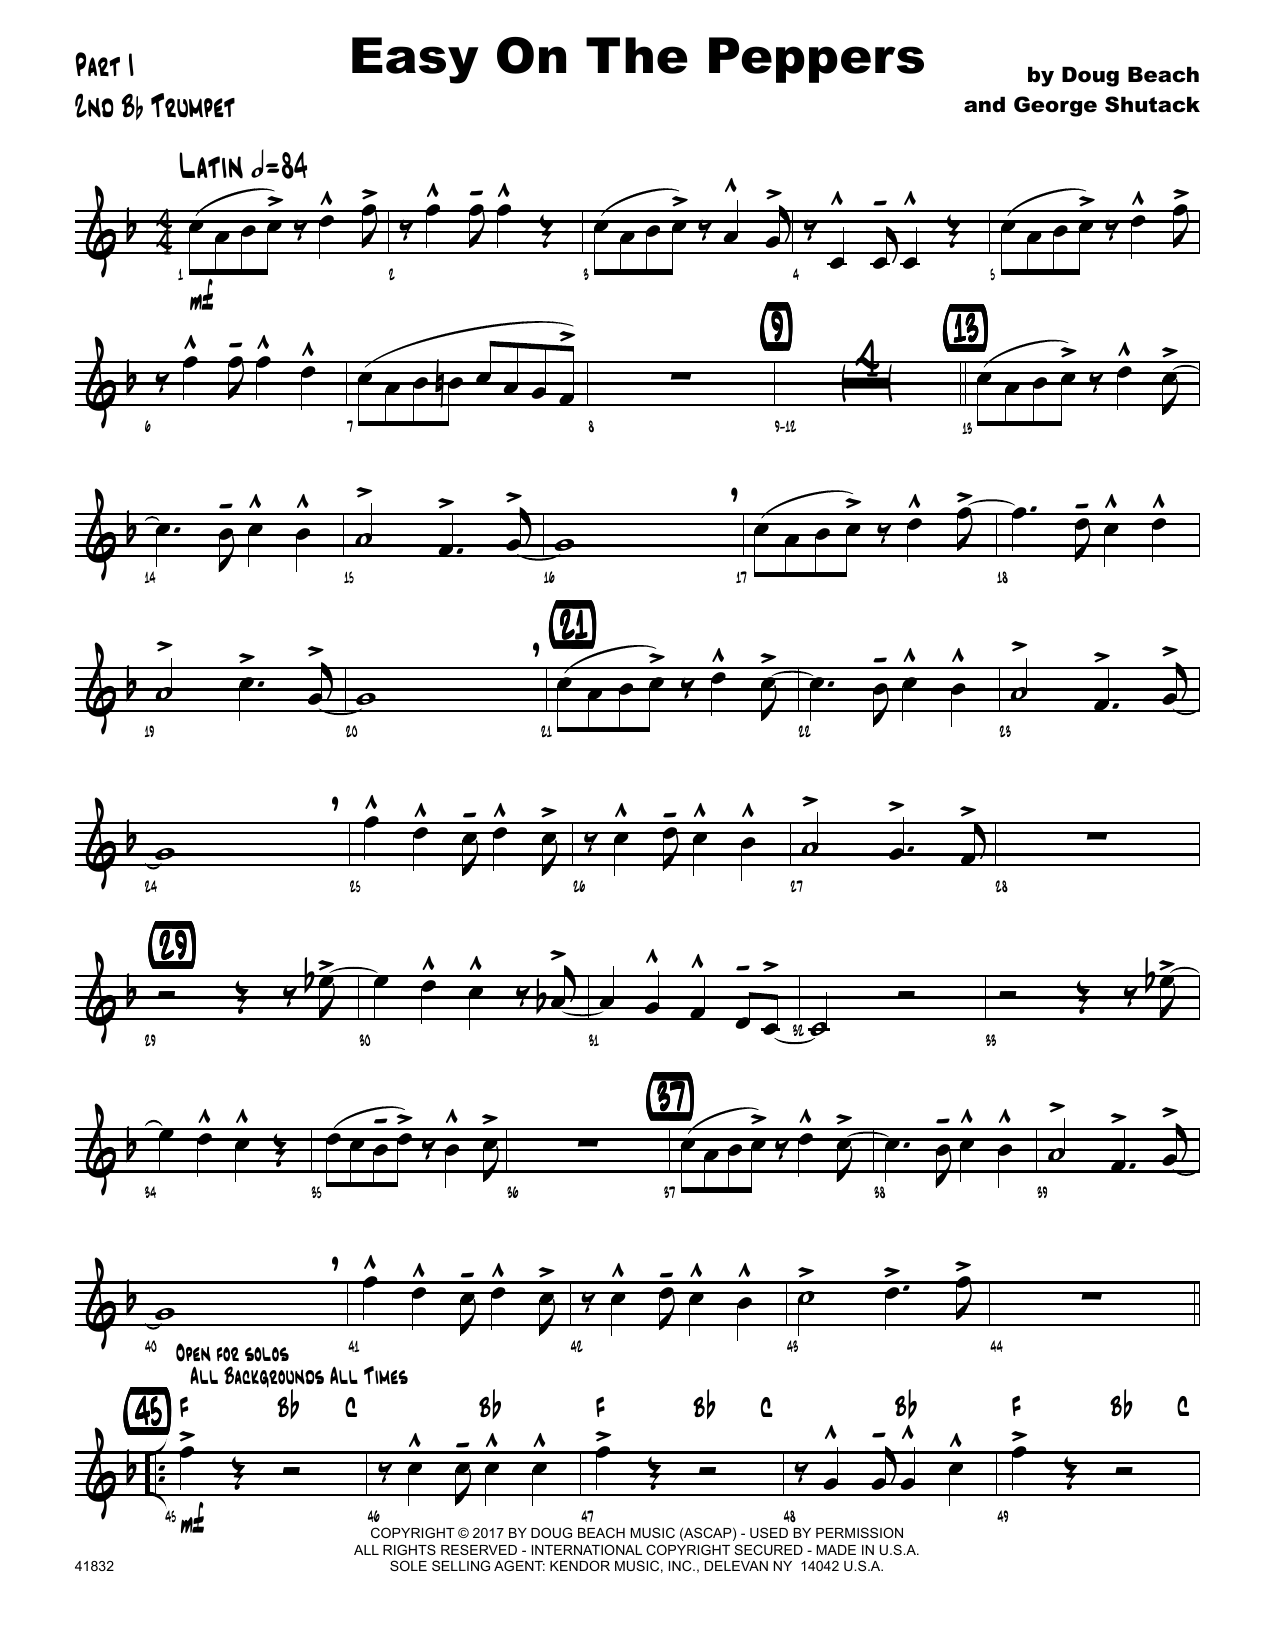 Easy On The Peppers - 2nd Bb Trumpet by Doug Beach & George Shutack Jazz  Ensemble Digital Sheet Music